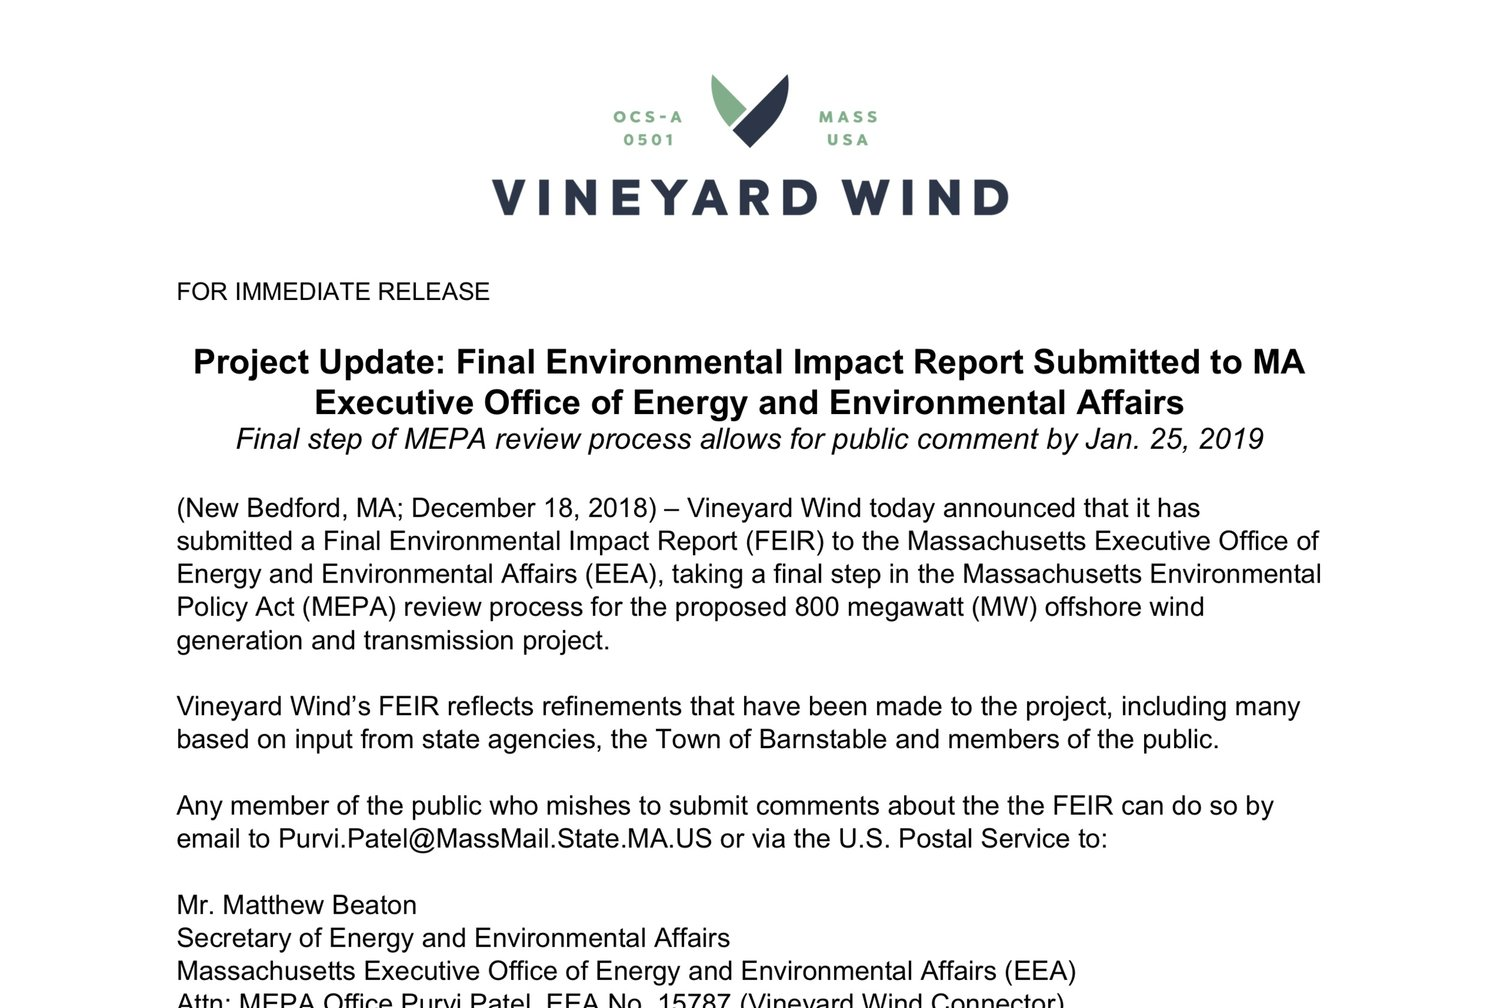 Project Update: Final Environmental Impact Report Submitted to MA Executive Office of Energy and Environmental Affairs